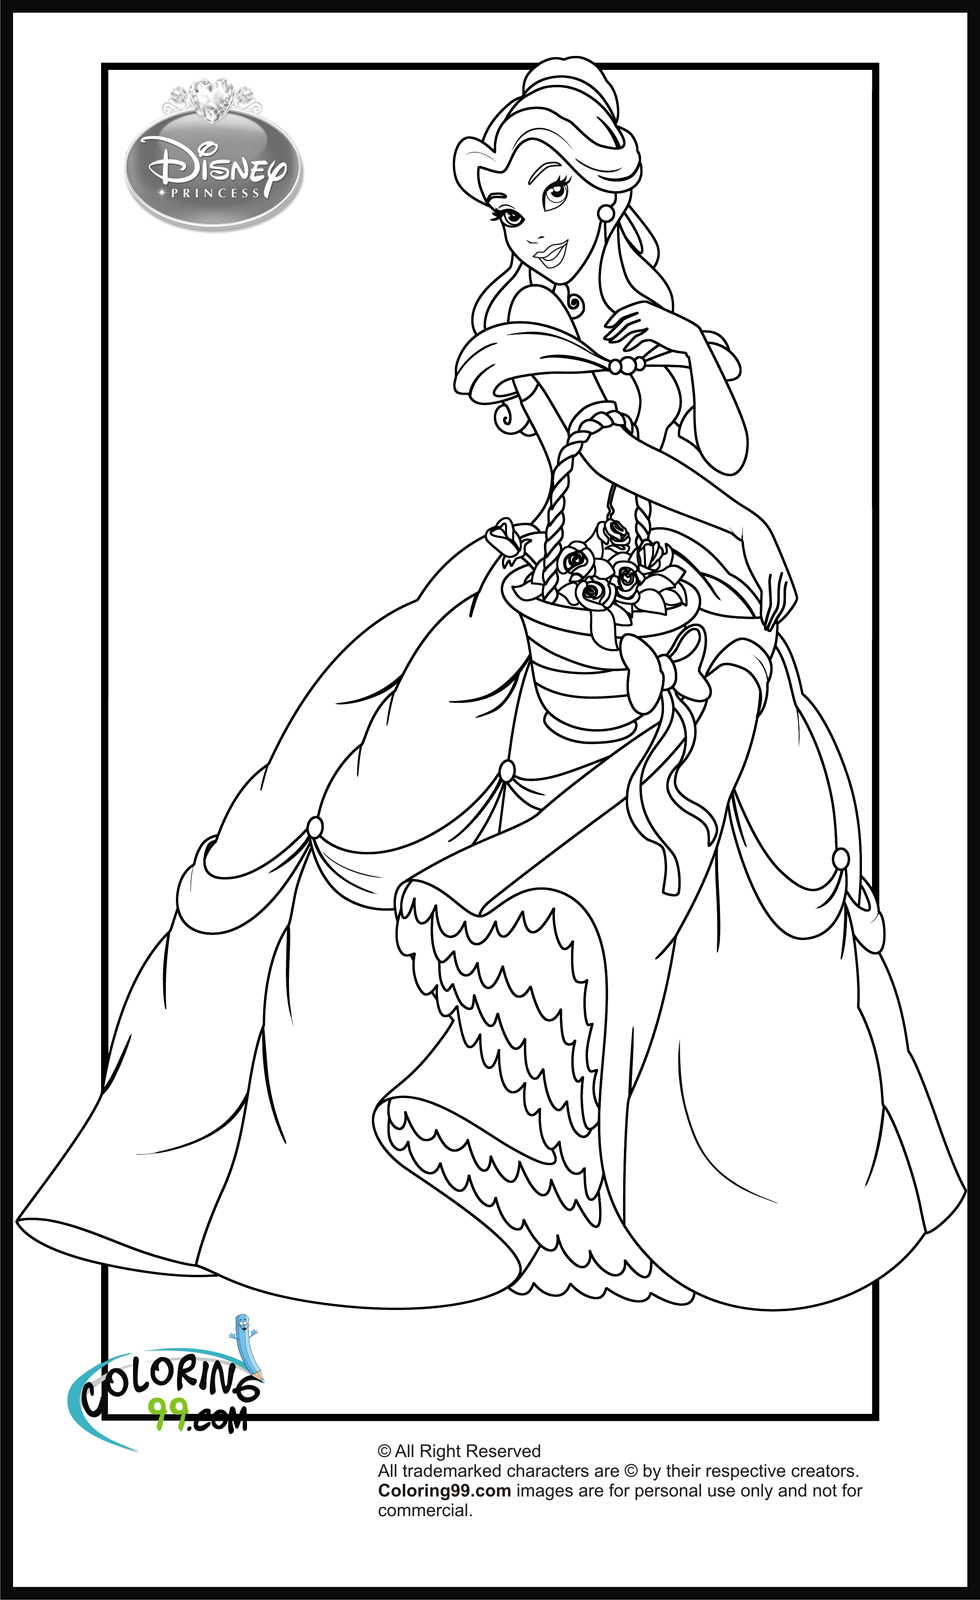 colouring pages for disney princesses disney princess coloring pages minister coloring for princesses disney colouring pages